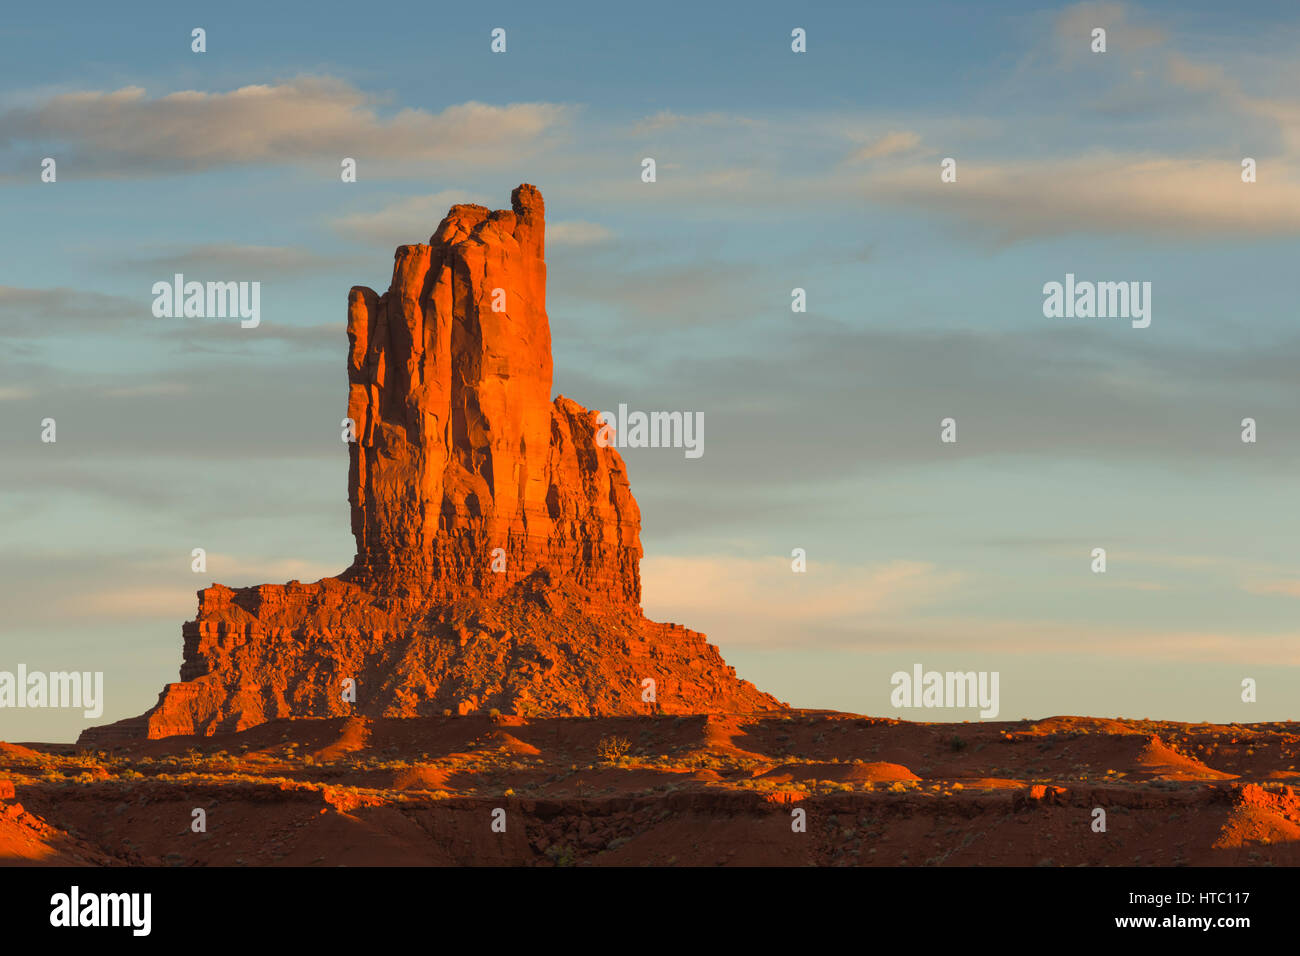 Big Indian Rock Formation Monument Valley Navajo Tribal Park UT - Ut usa